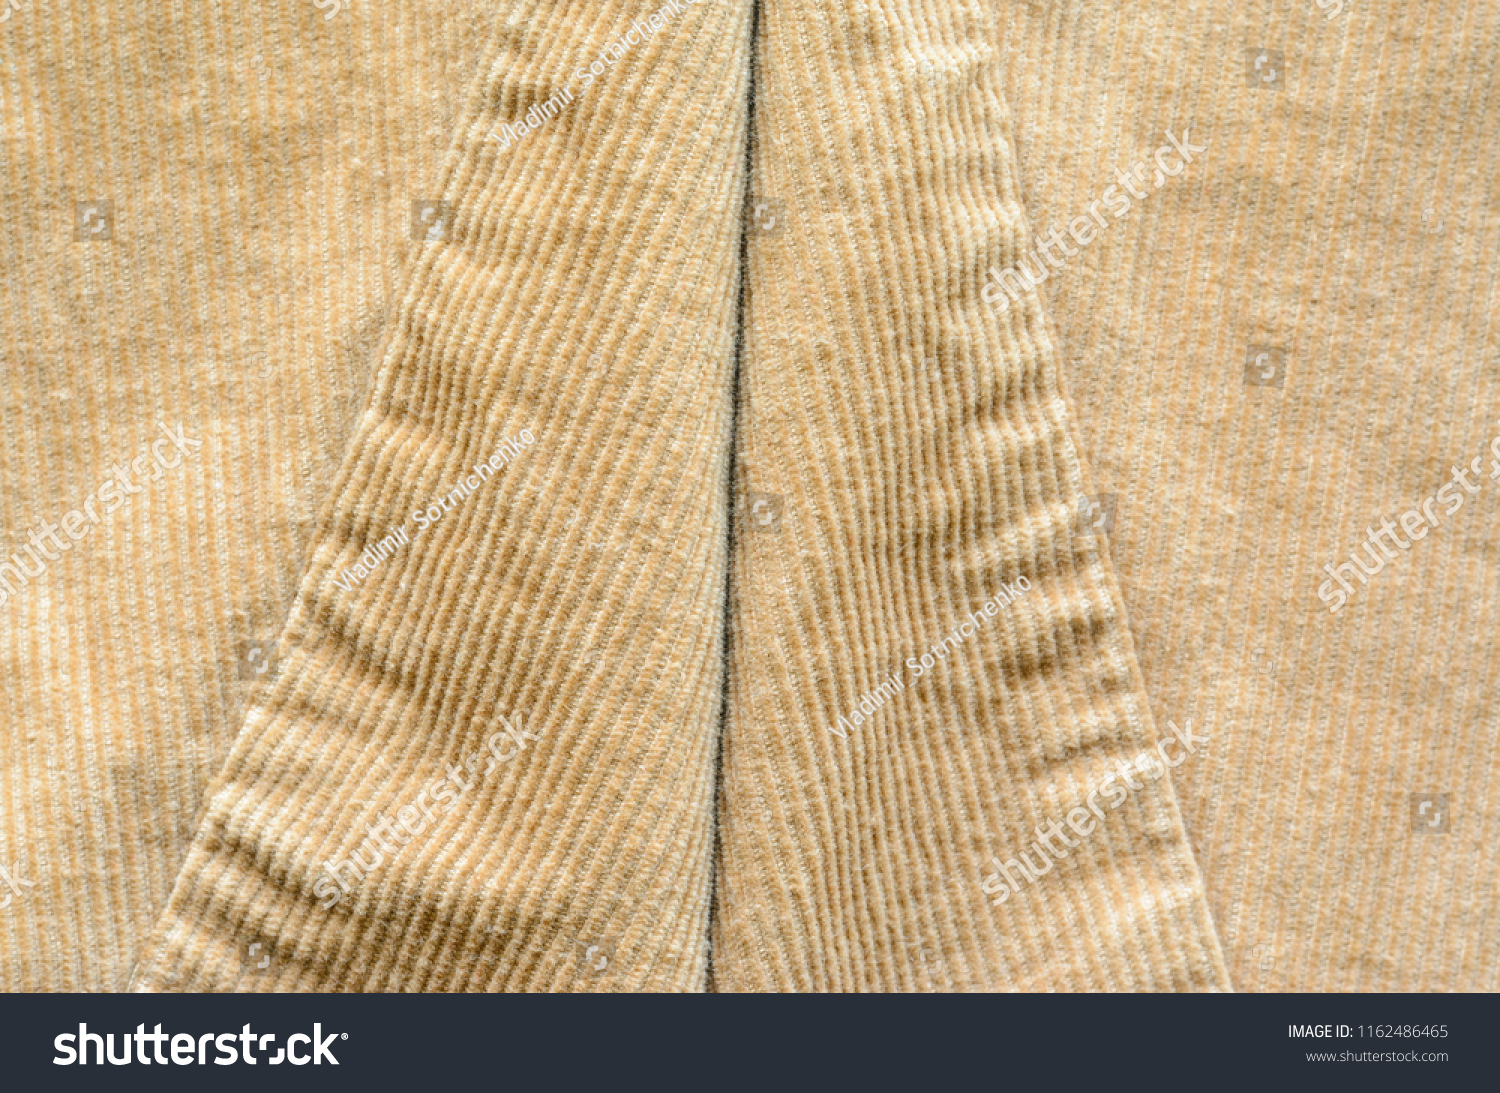 Texture Of Beige Velvet Clothes With Stitches Seams On Cloth Textile Fabric Of Corduroy As Background